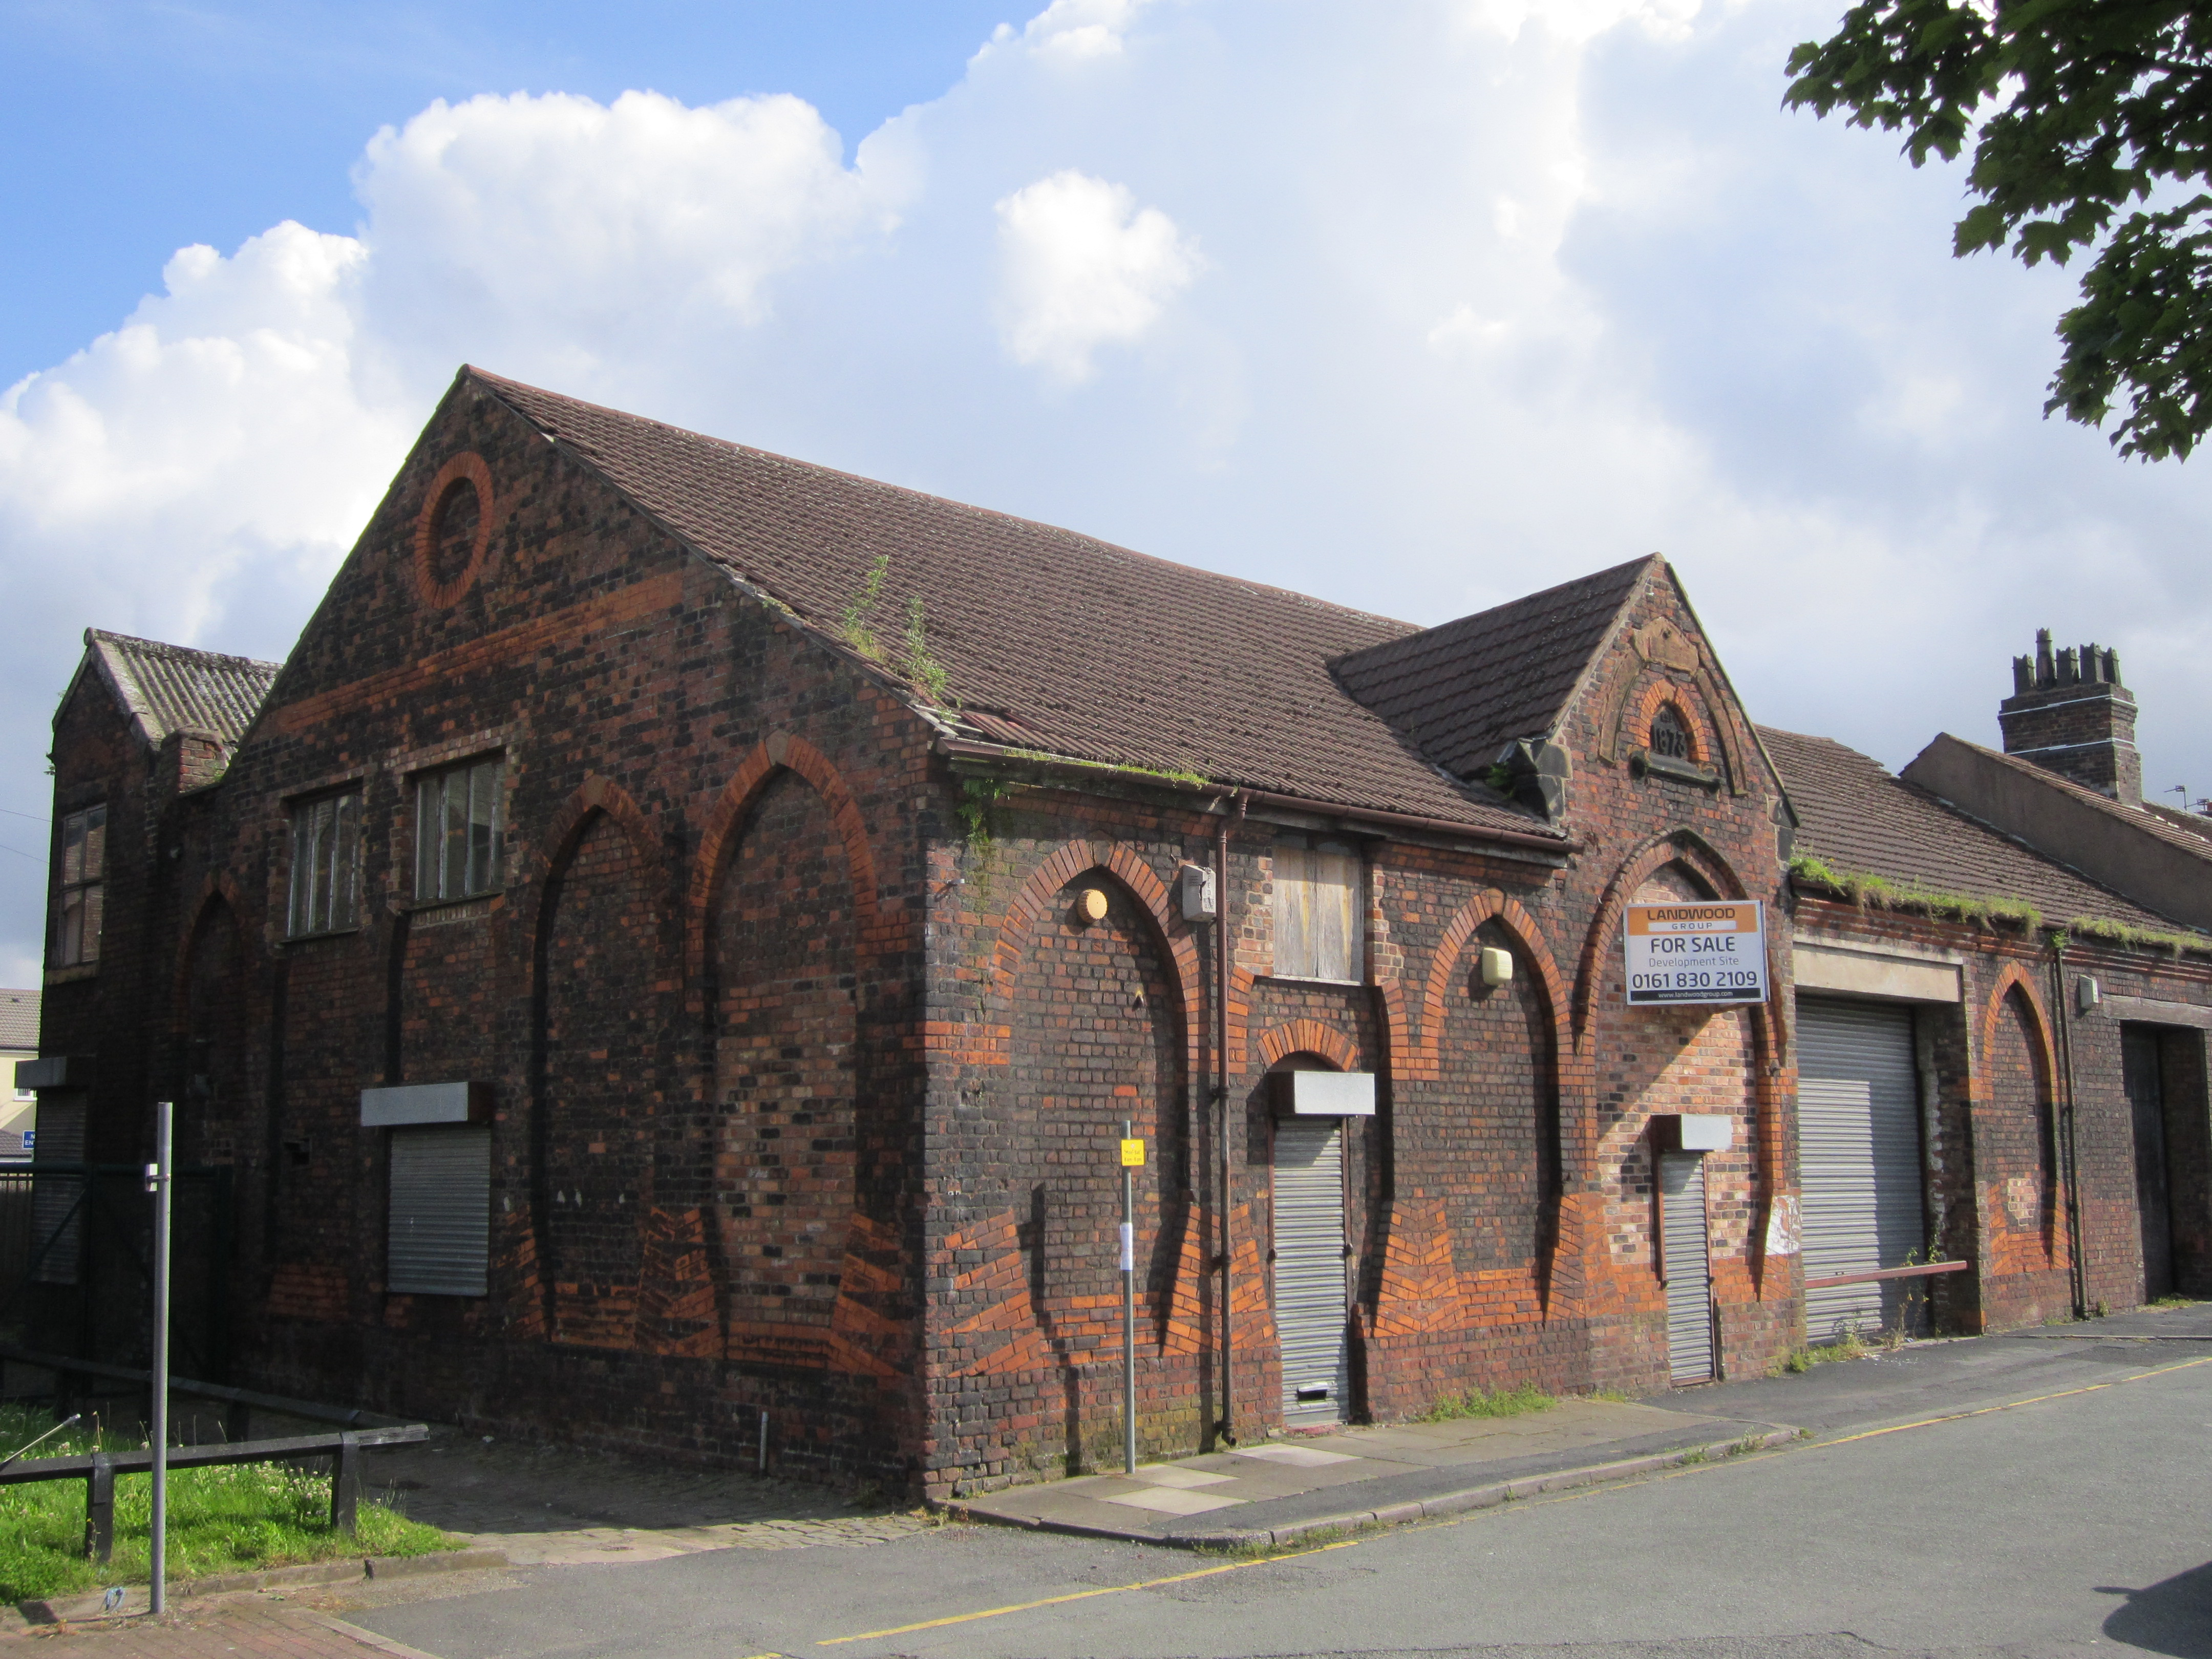 File:Old church building for sale, Widnes.JPG - Wikimedia Commons